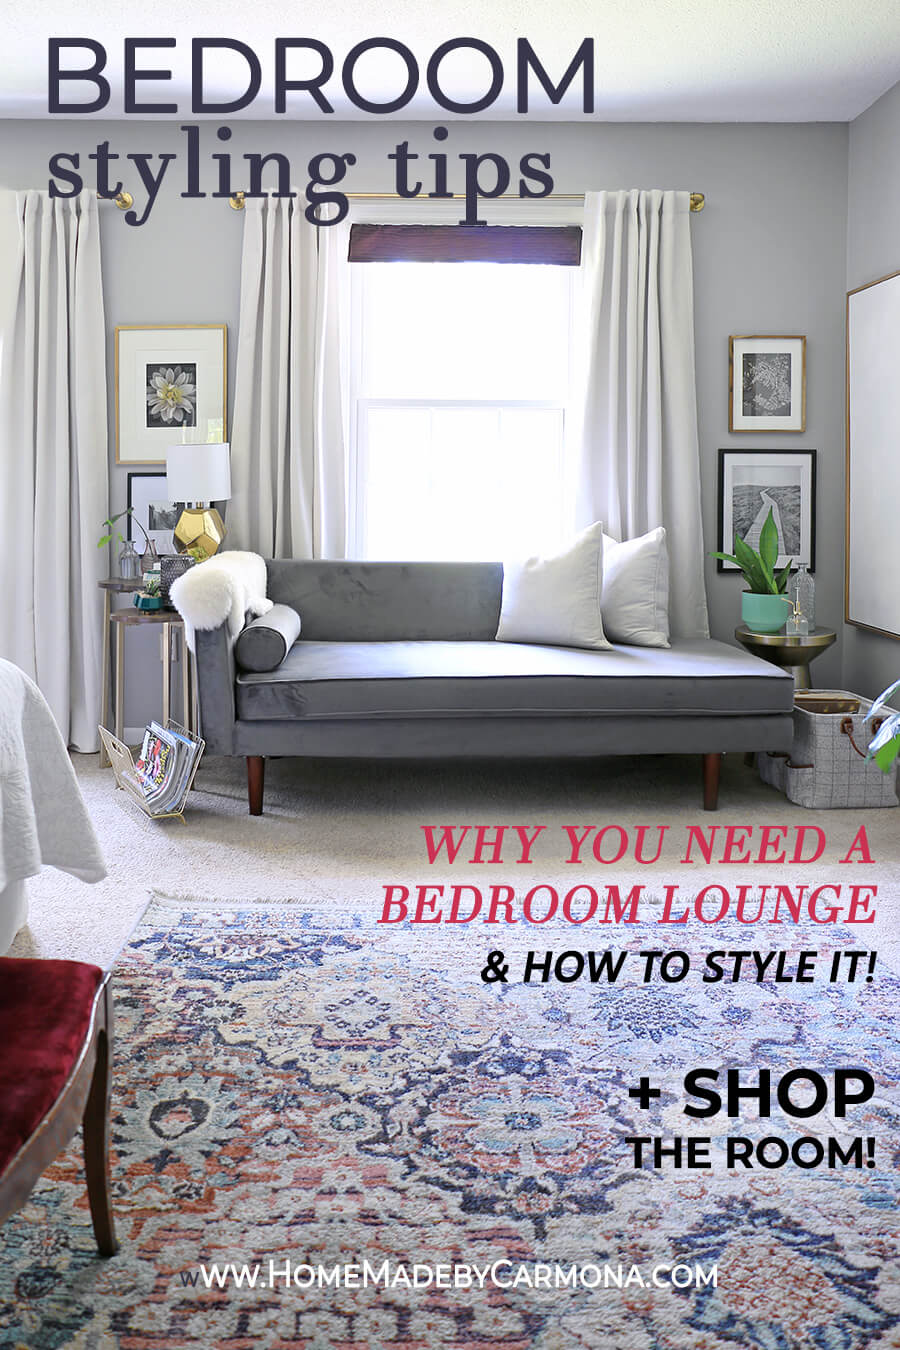 Bedroom-Styling-and-Lounge-Tips